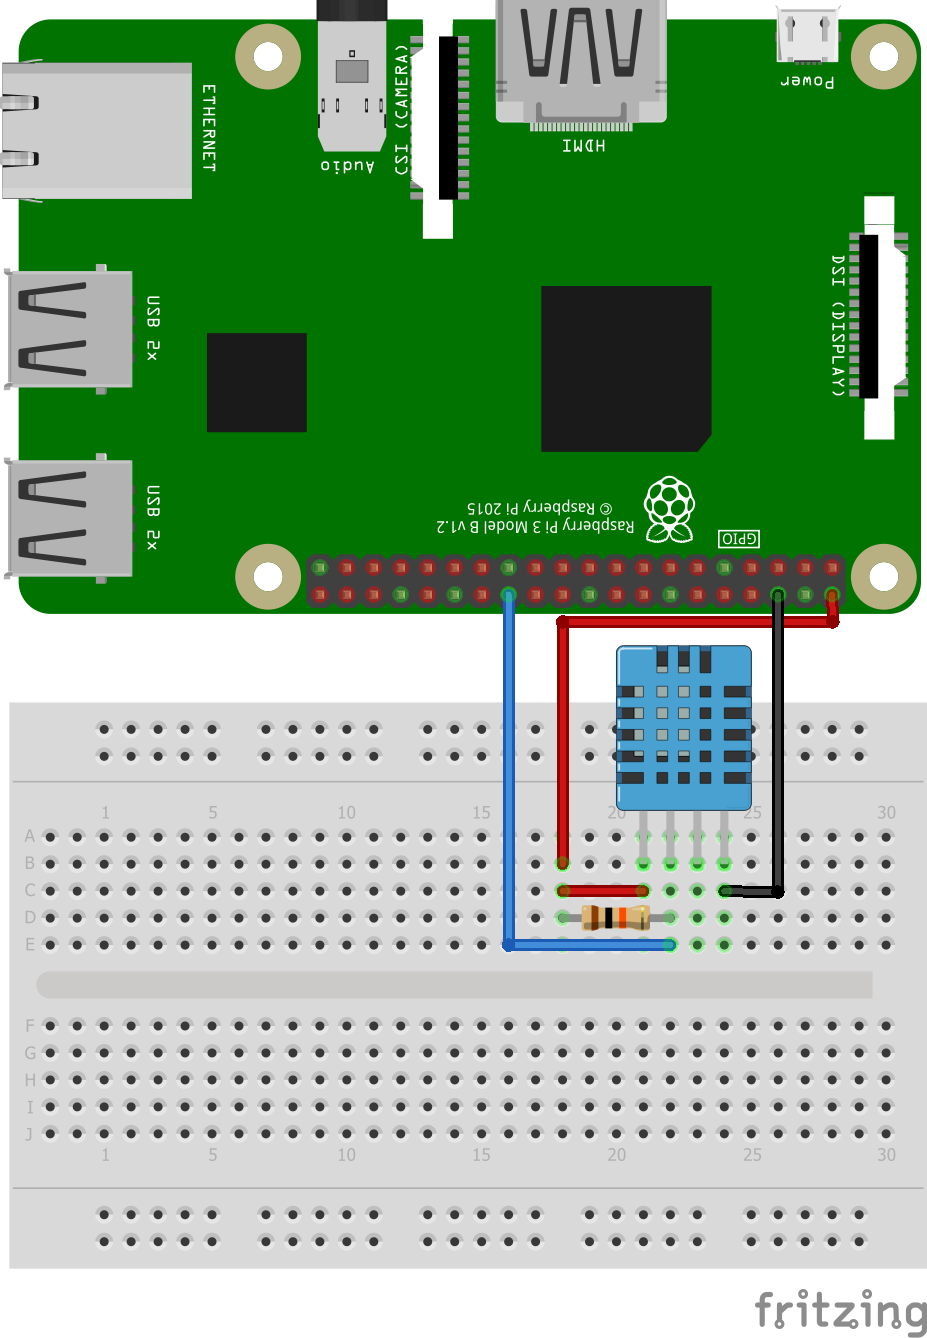 Circuit of DHT11 Temperature and Humidity Sensor in Raspberry Pi